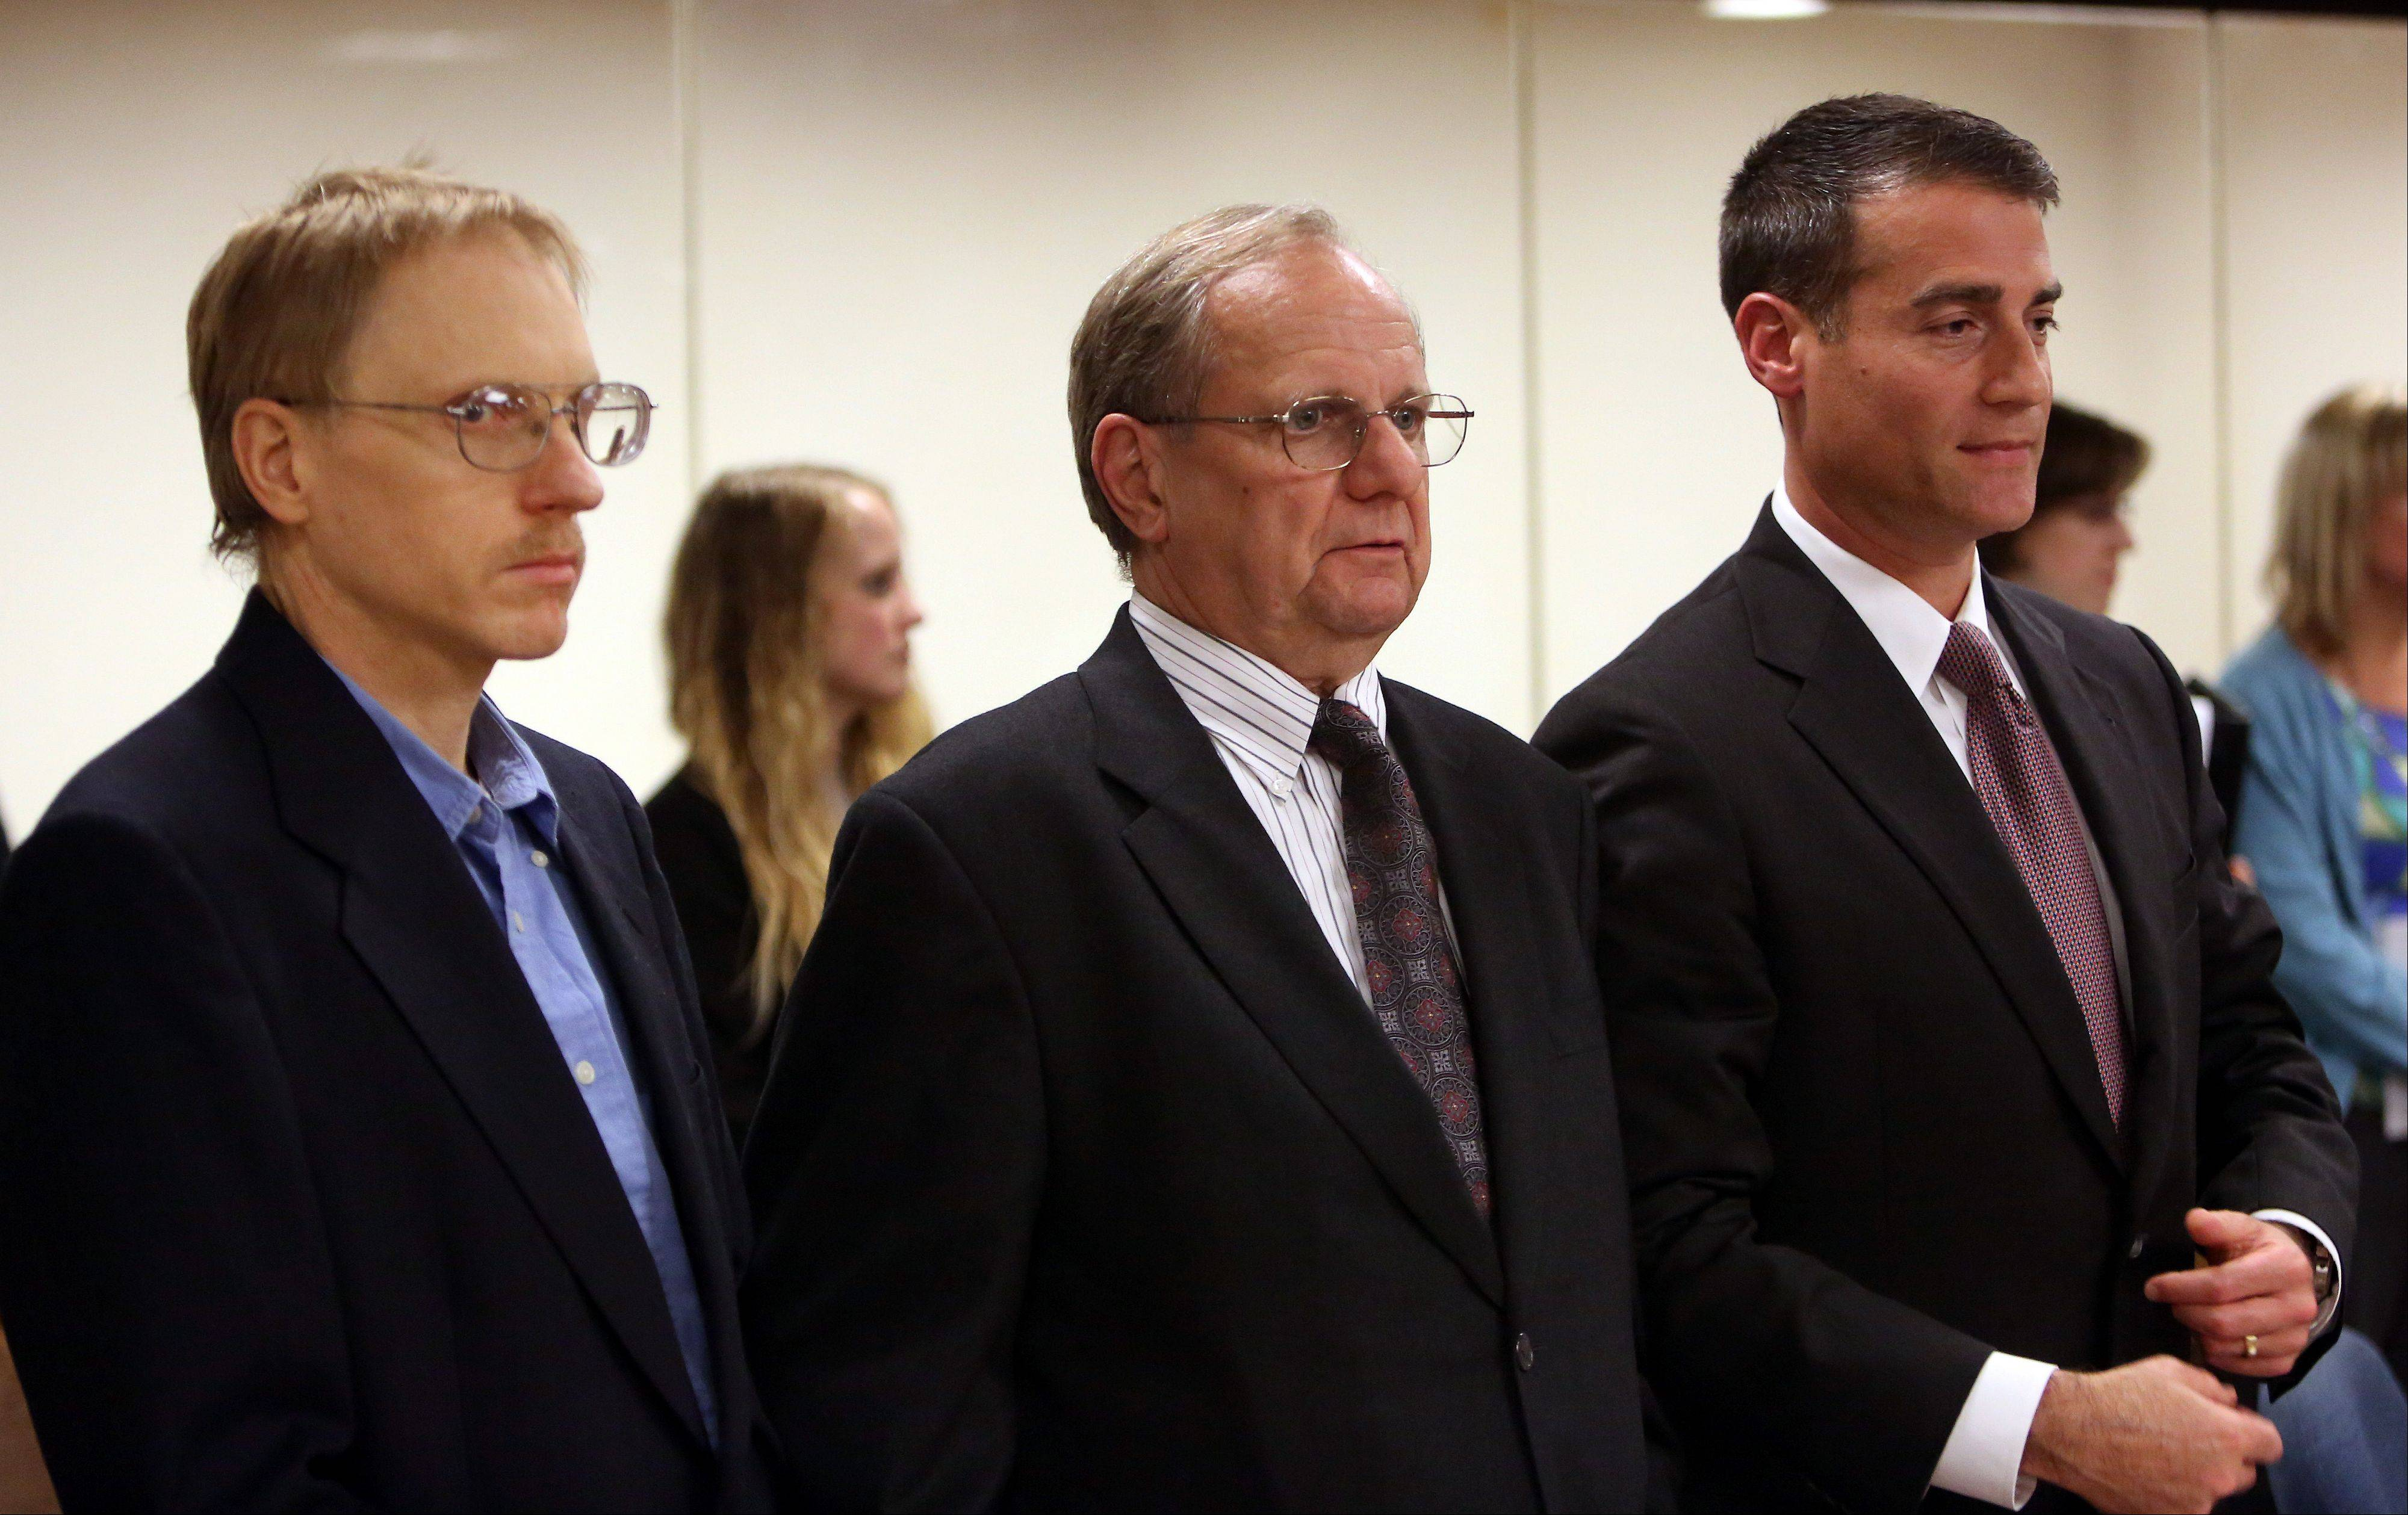 Ronald Stolberg, left, stands with his attorneys William Hedrick, middle, and Kevin Rosner during court Tuesday. Stolberg was convicted of involuntary manslaughter in the 2011 death of his wife, Rachel Stolberg, in the courtroom of Judge Mark Levitt in Lake County on Tuesday, May 28, 2013, in Waukegan.